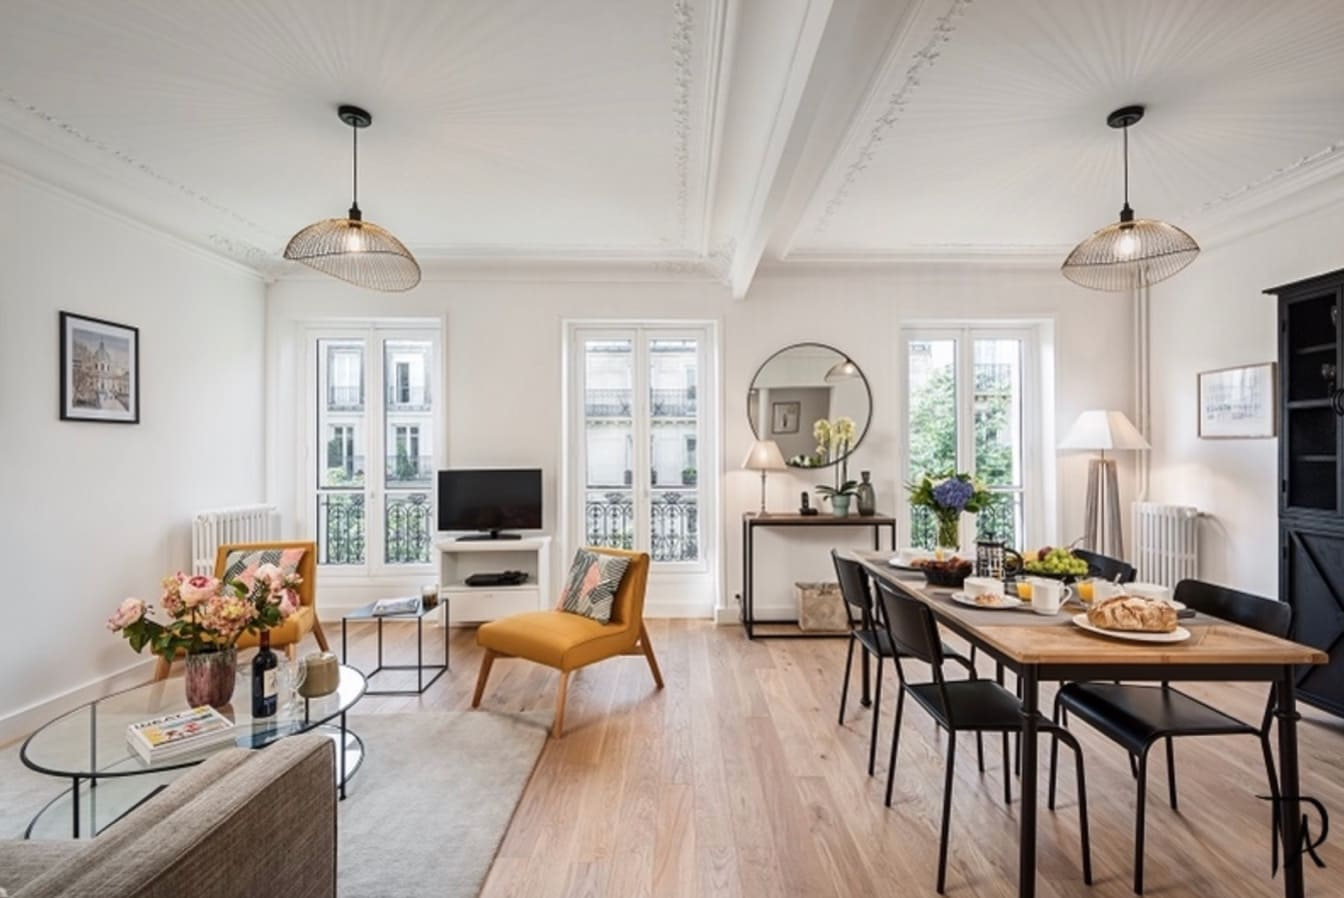 TYPICAL COZY AND CHARMING PARISIAN AMBIANCE